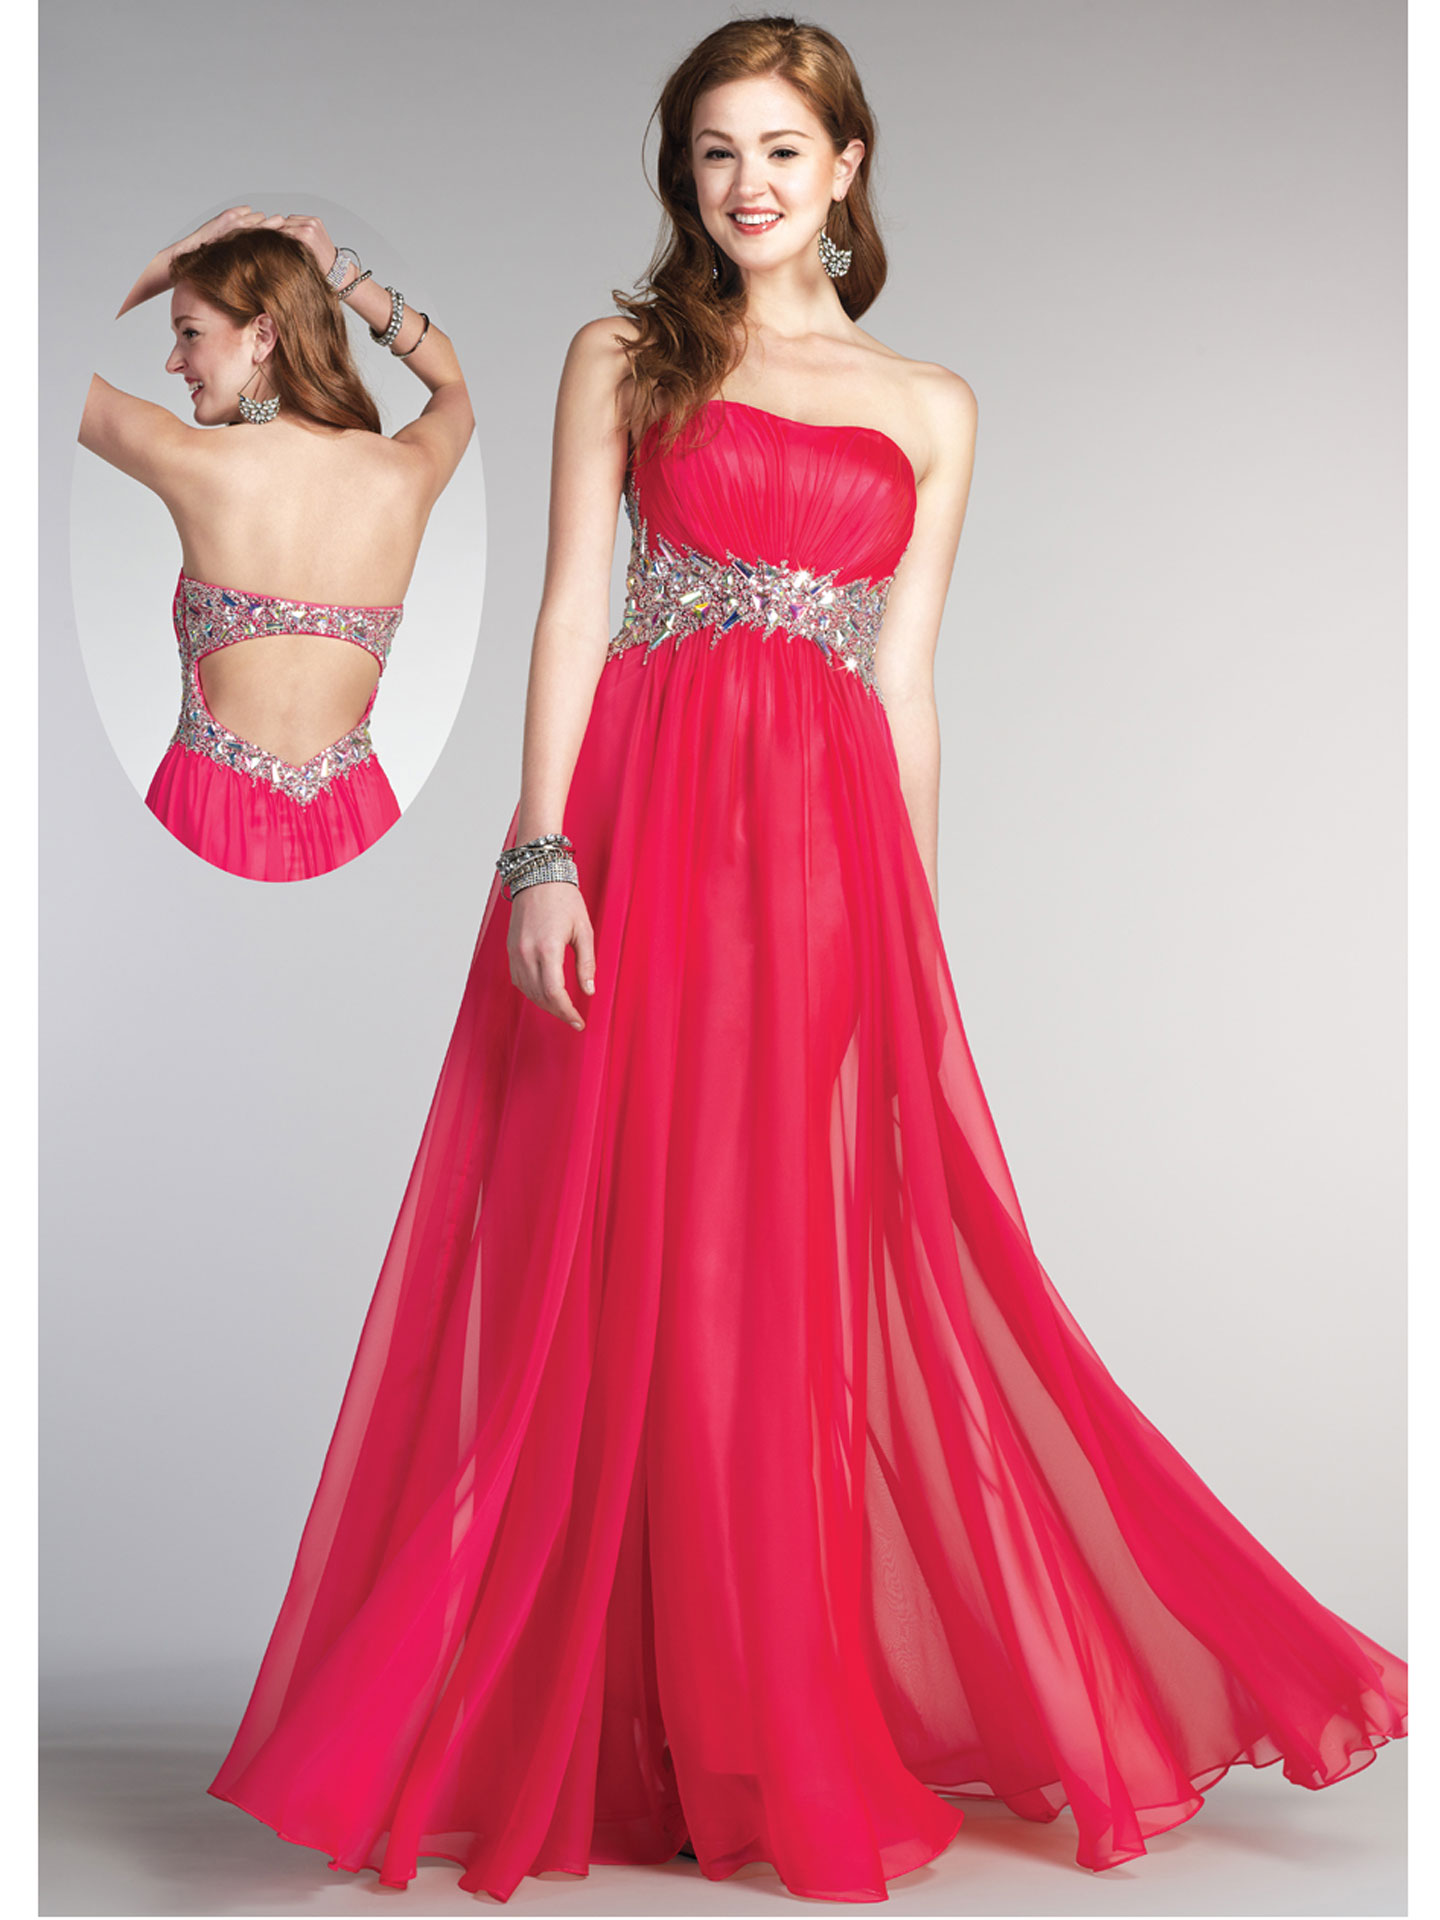 28 Red Prom Dresses for 2016